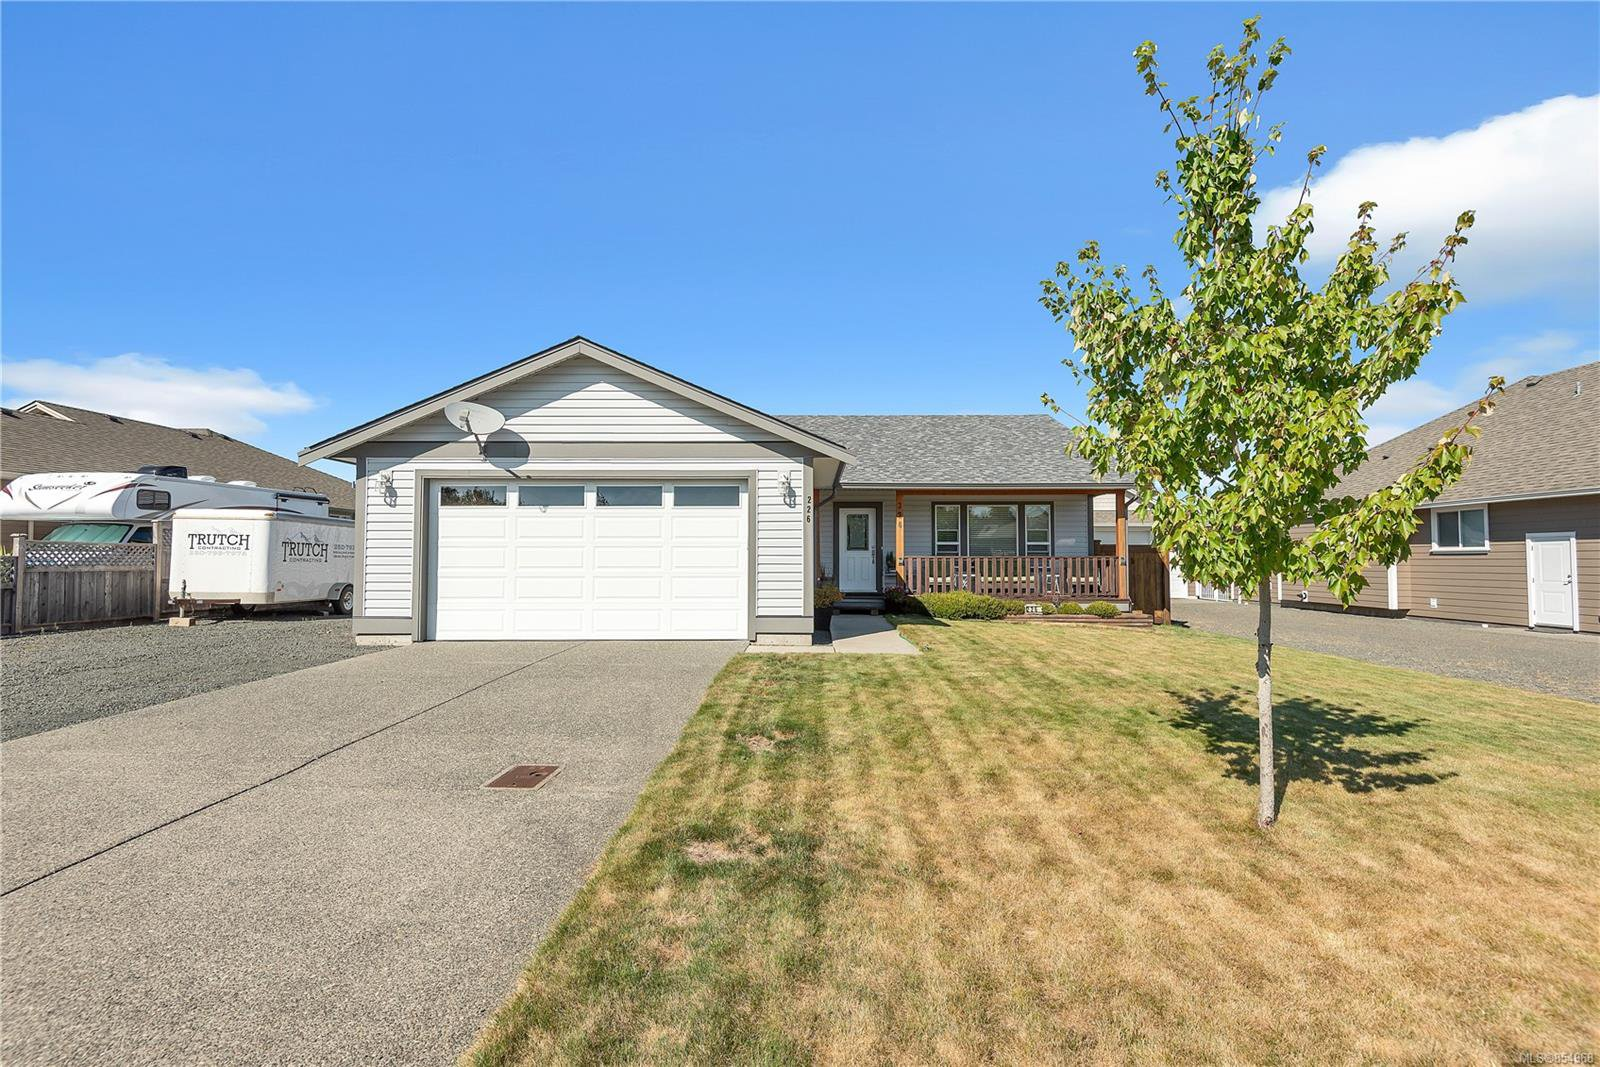 Main Photo: 226 W Brind'Amour Dr in : CR Willow Point House for sale (Campbell River)  : MLS®# 854968